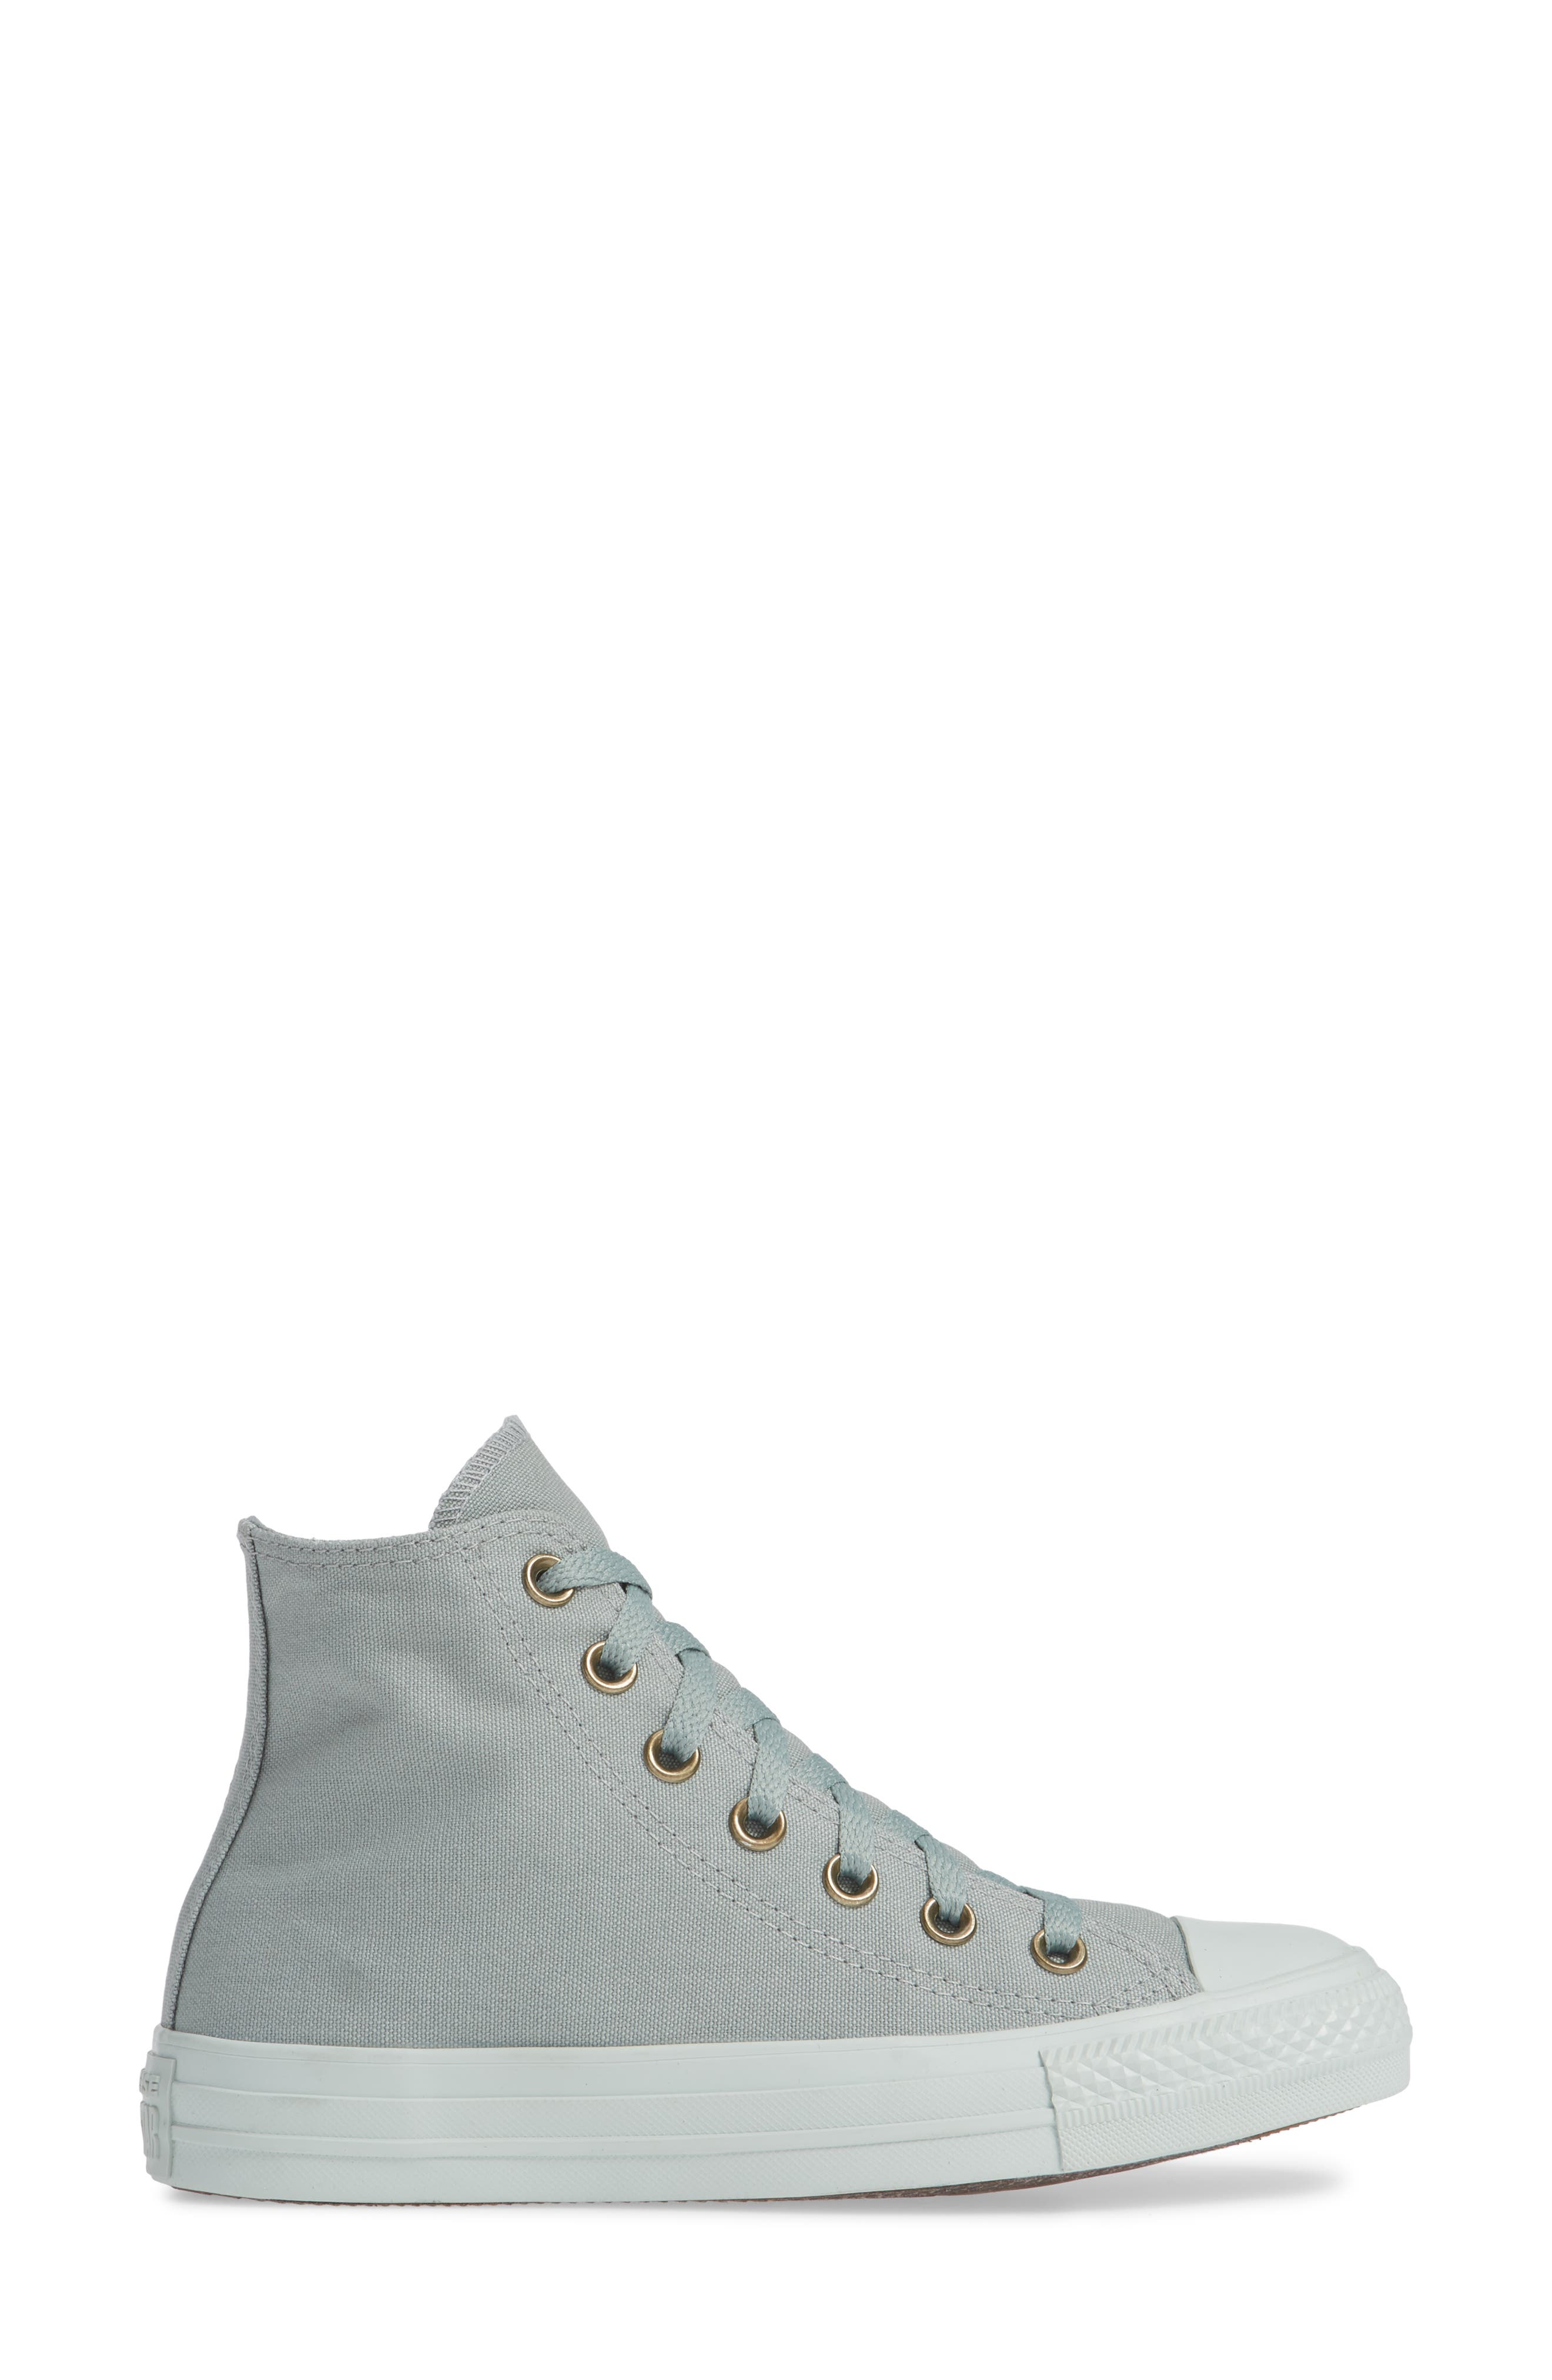 Chuck Taylor<sup>®</sup> All Star<sup>®</sup> Botanical High Top Sneaker,                             Alternate thumbnail 3, color,                             MICA GREEN